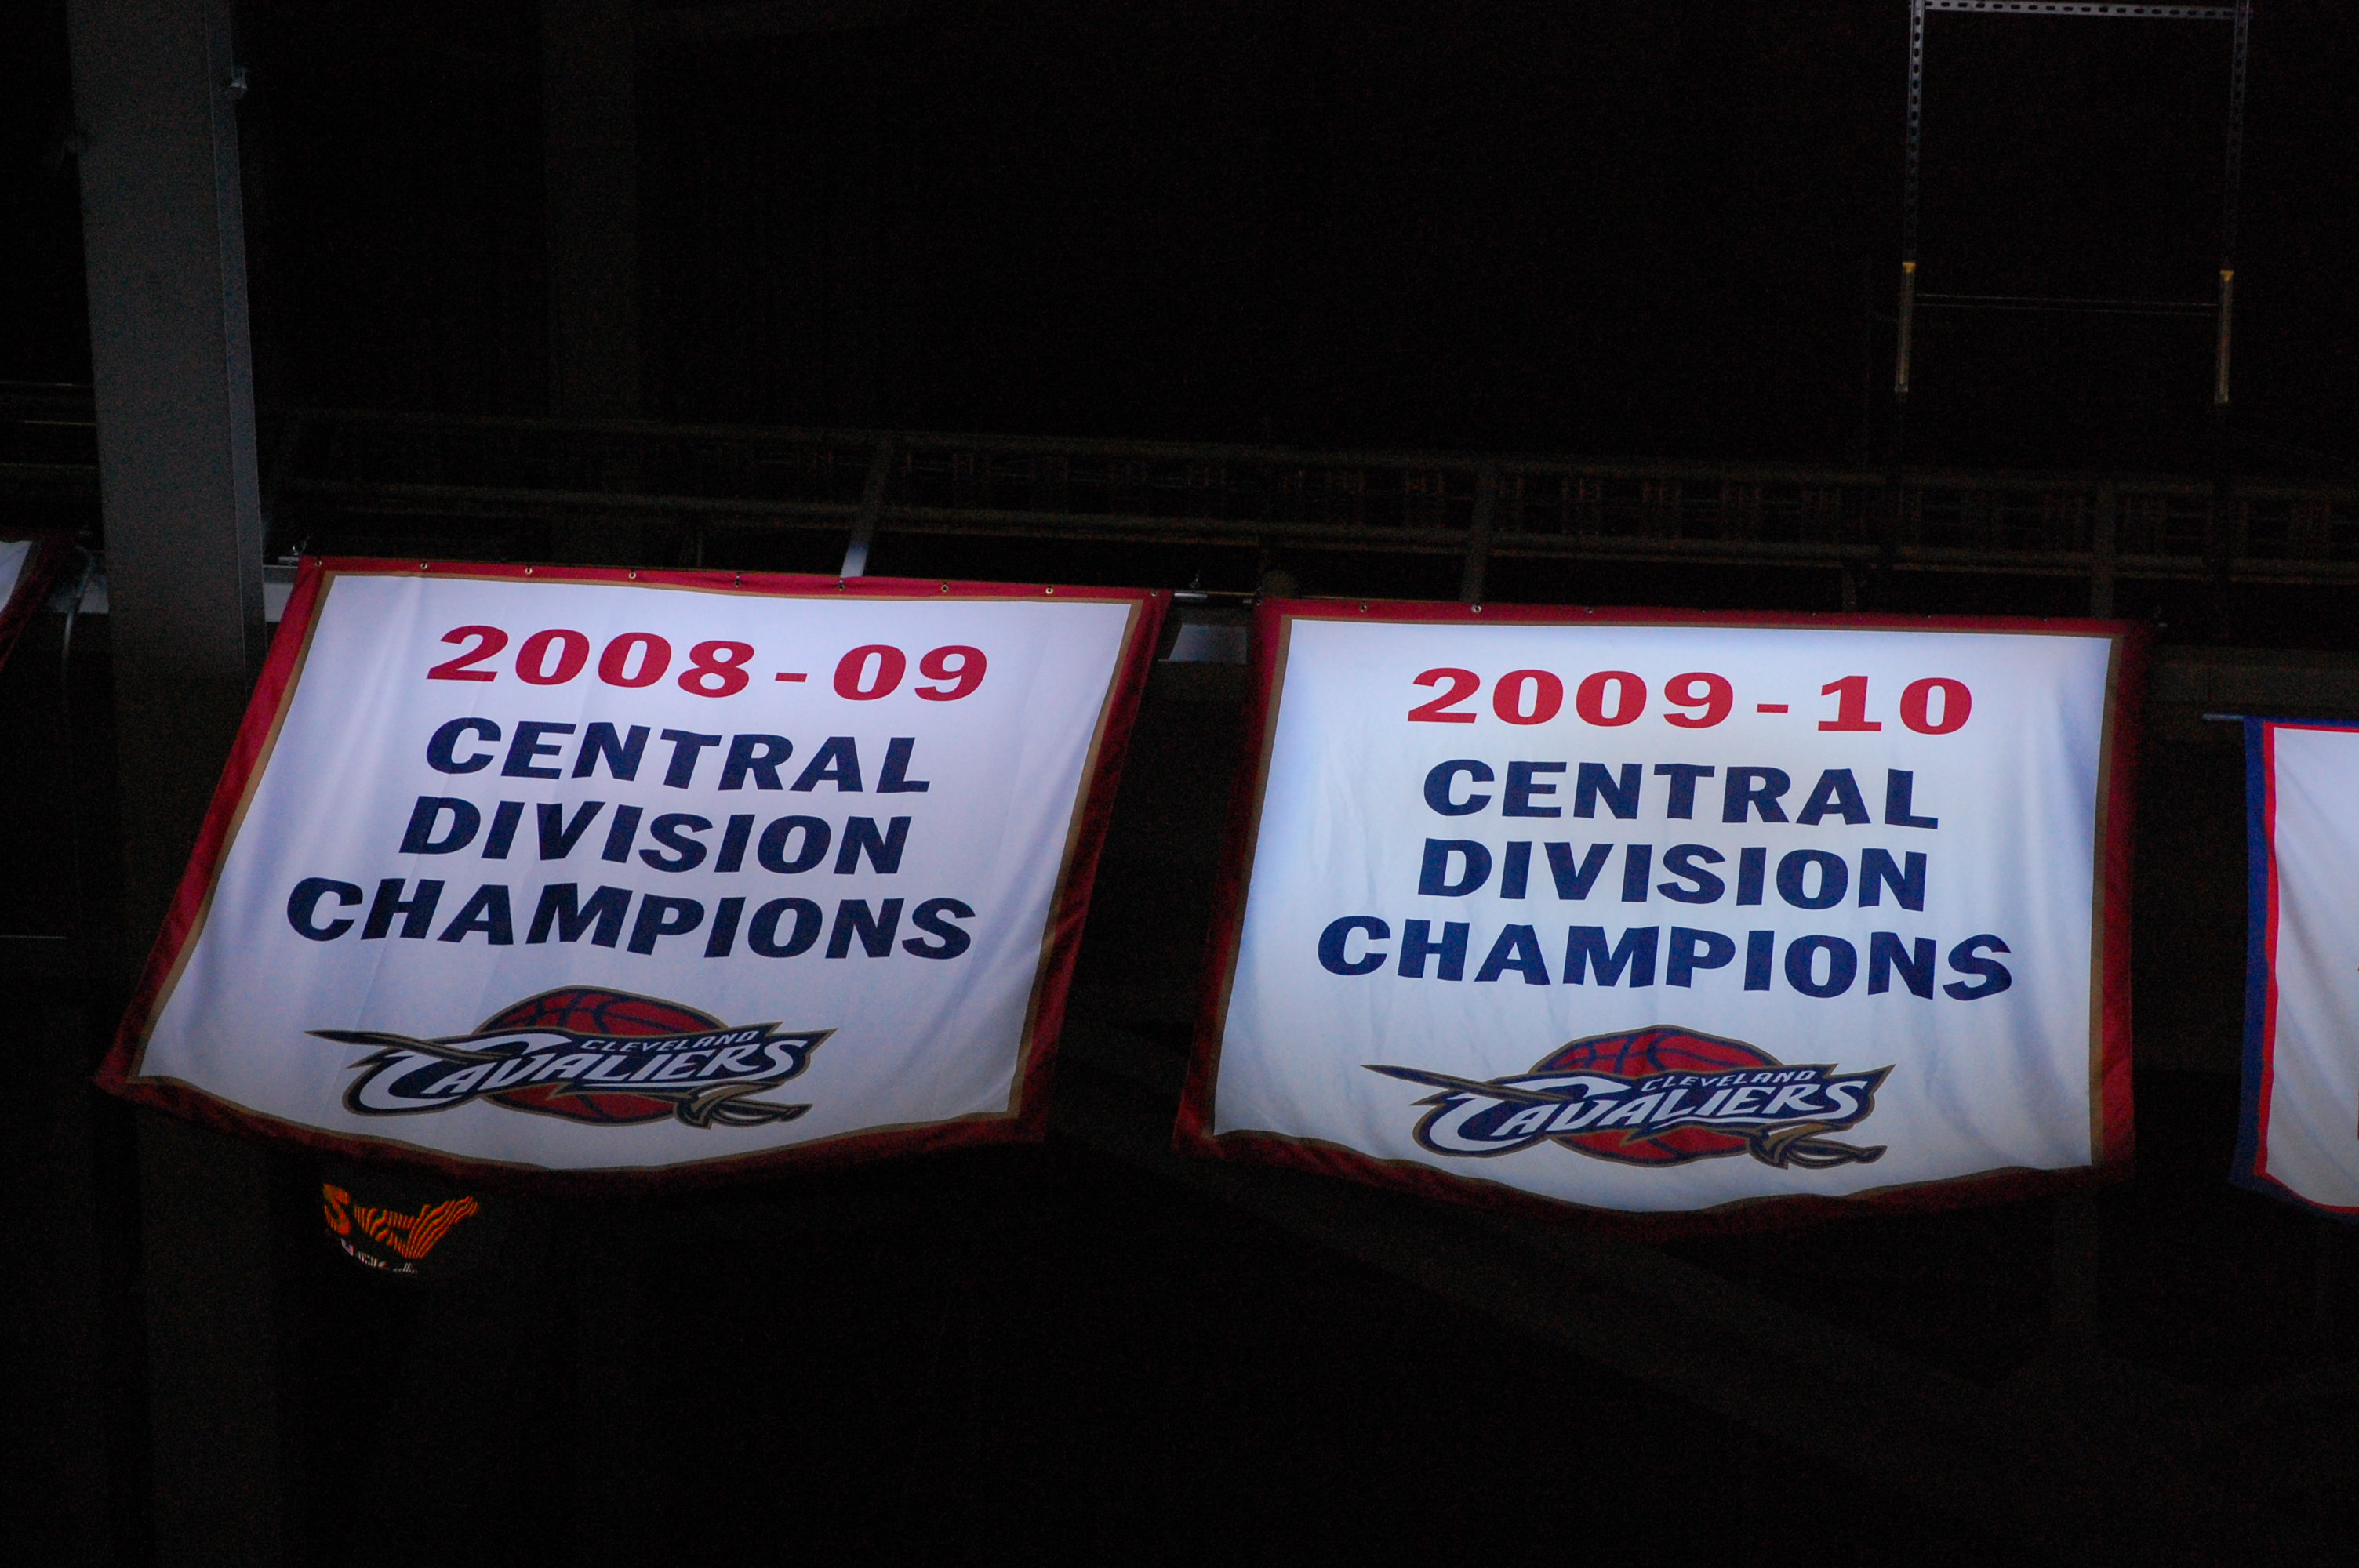 Cavaliers banners